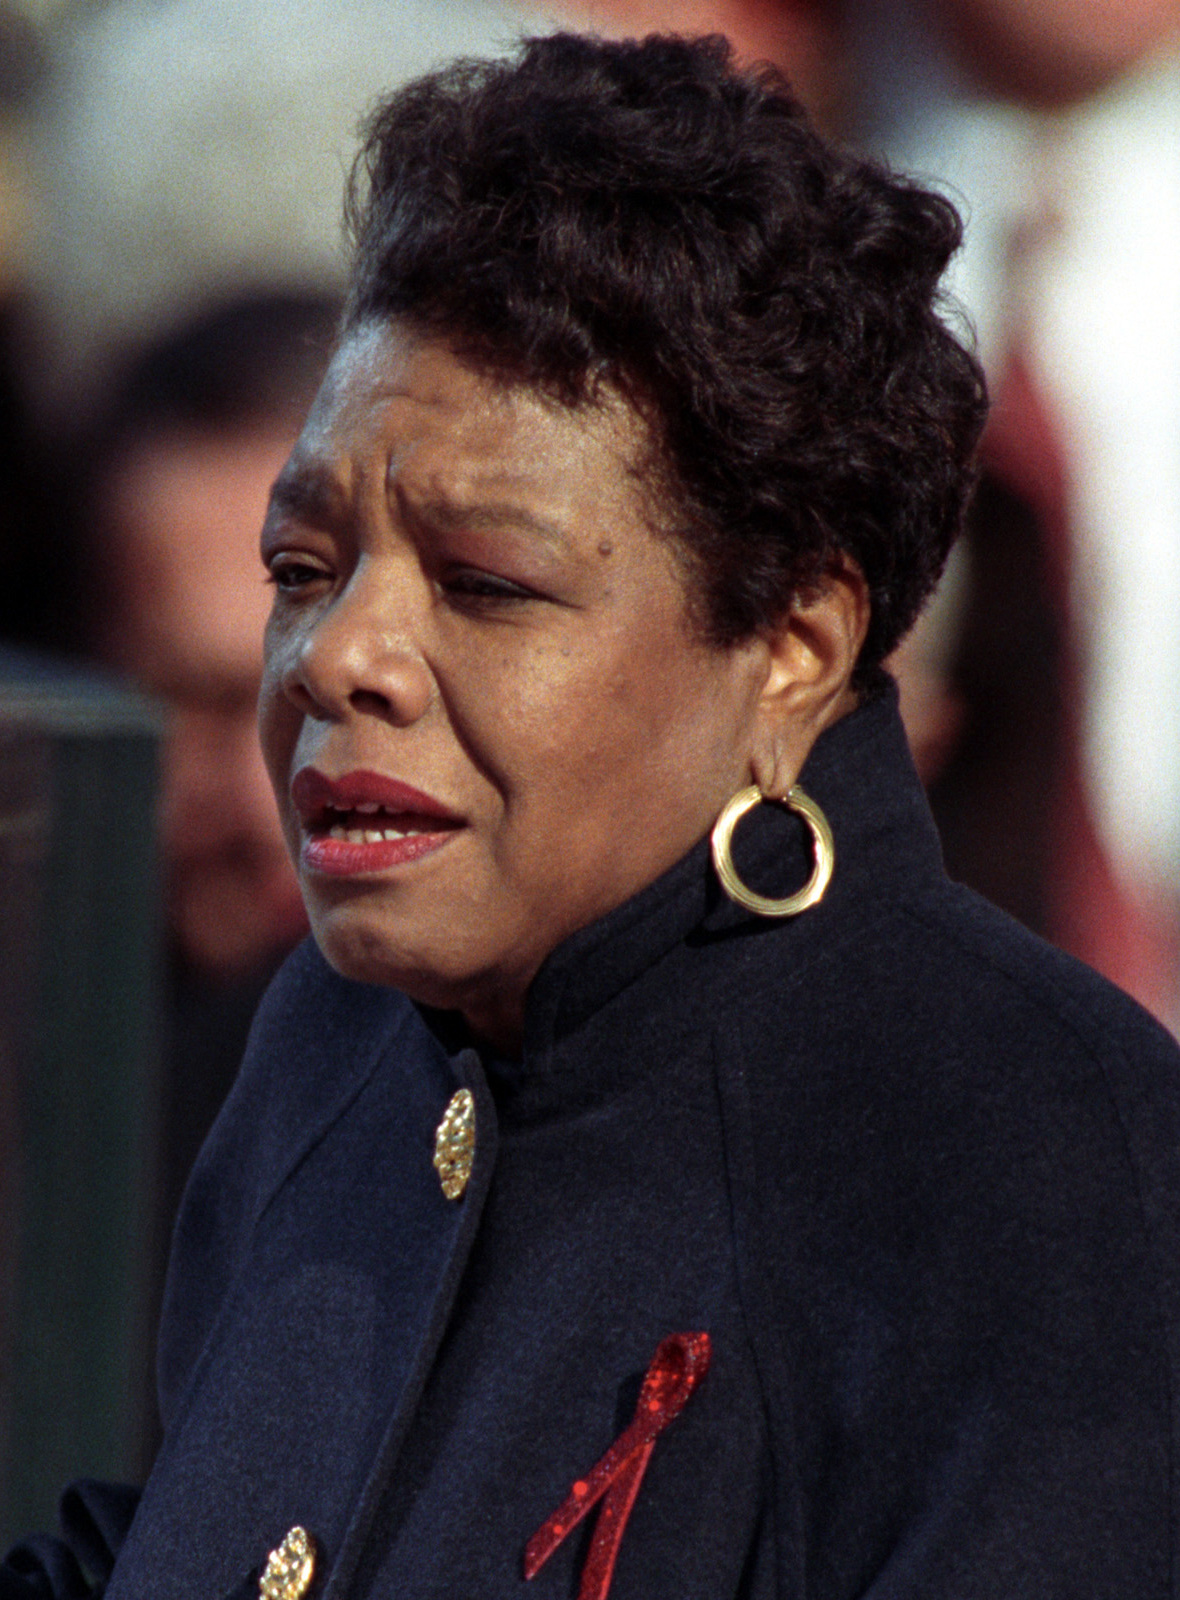 """Angelou reciting her poem """"On the Pulse of Morning"""" at President Bill Clinton's inauguration, January 20, 1993 By Clinton Library - William J. Clinton Presidential Library, Public Domain, https://commons.wikimedia.org/w/index.php?curid=67072902"""